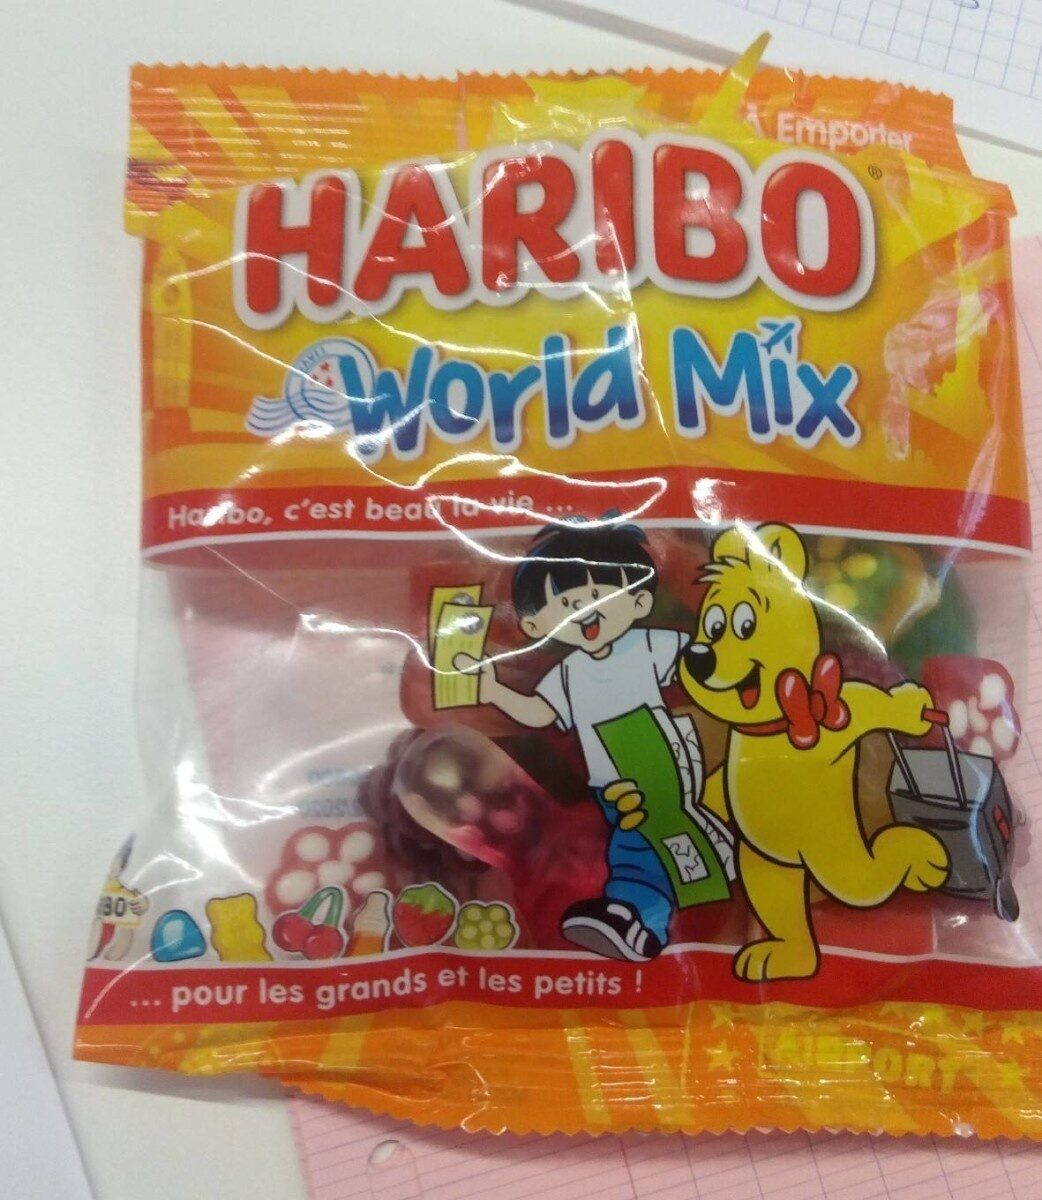 HARIBO world mix - Product - fr